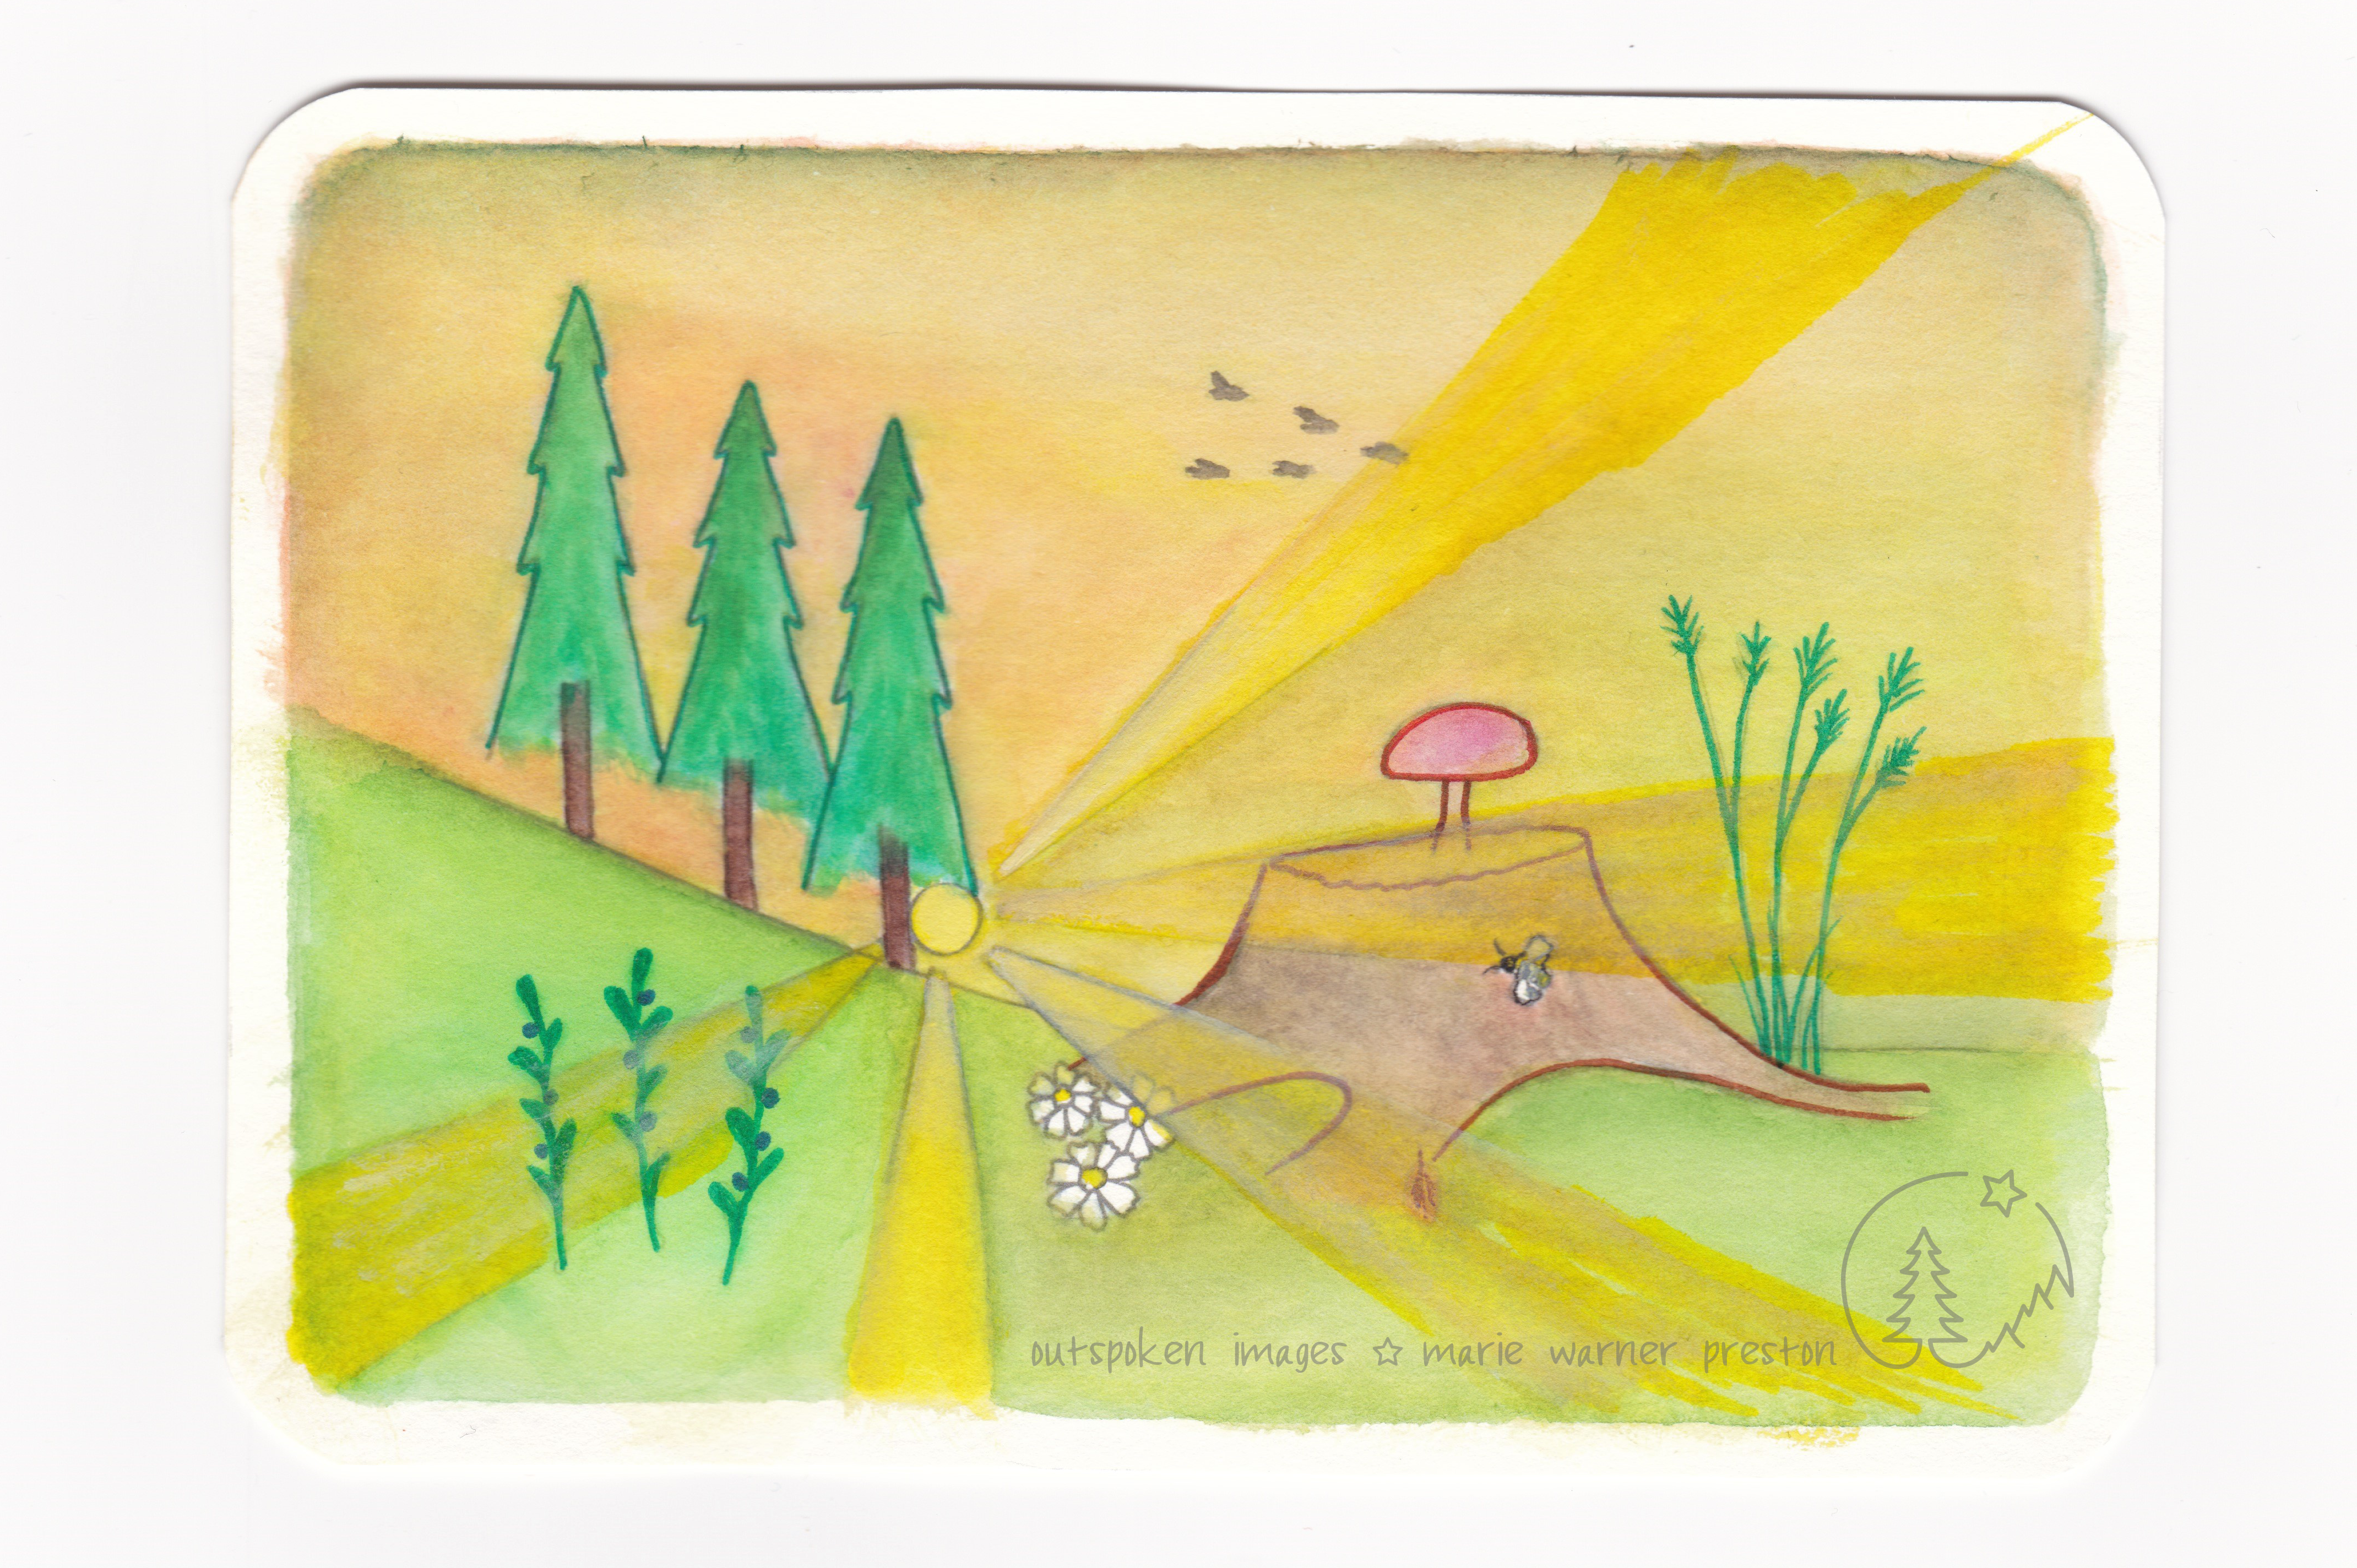 Watercolour painting of green trees, grasses, and blueberry plants. Red mushroom, brown tree stump, yellow sunrays. Black and white birds, bees, flowers. ©2021 Outspoken Images by Marie Warner Preston